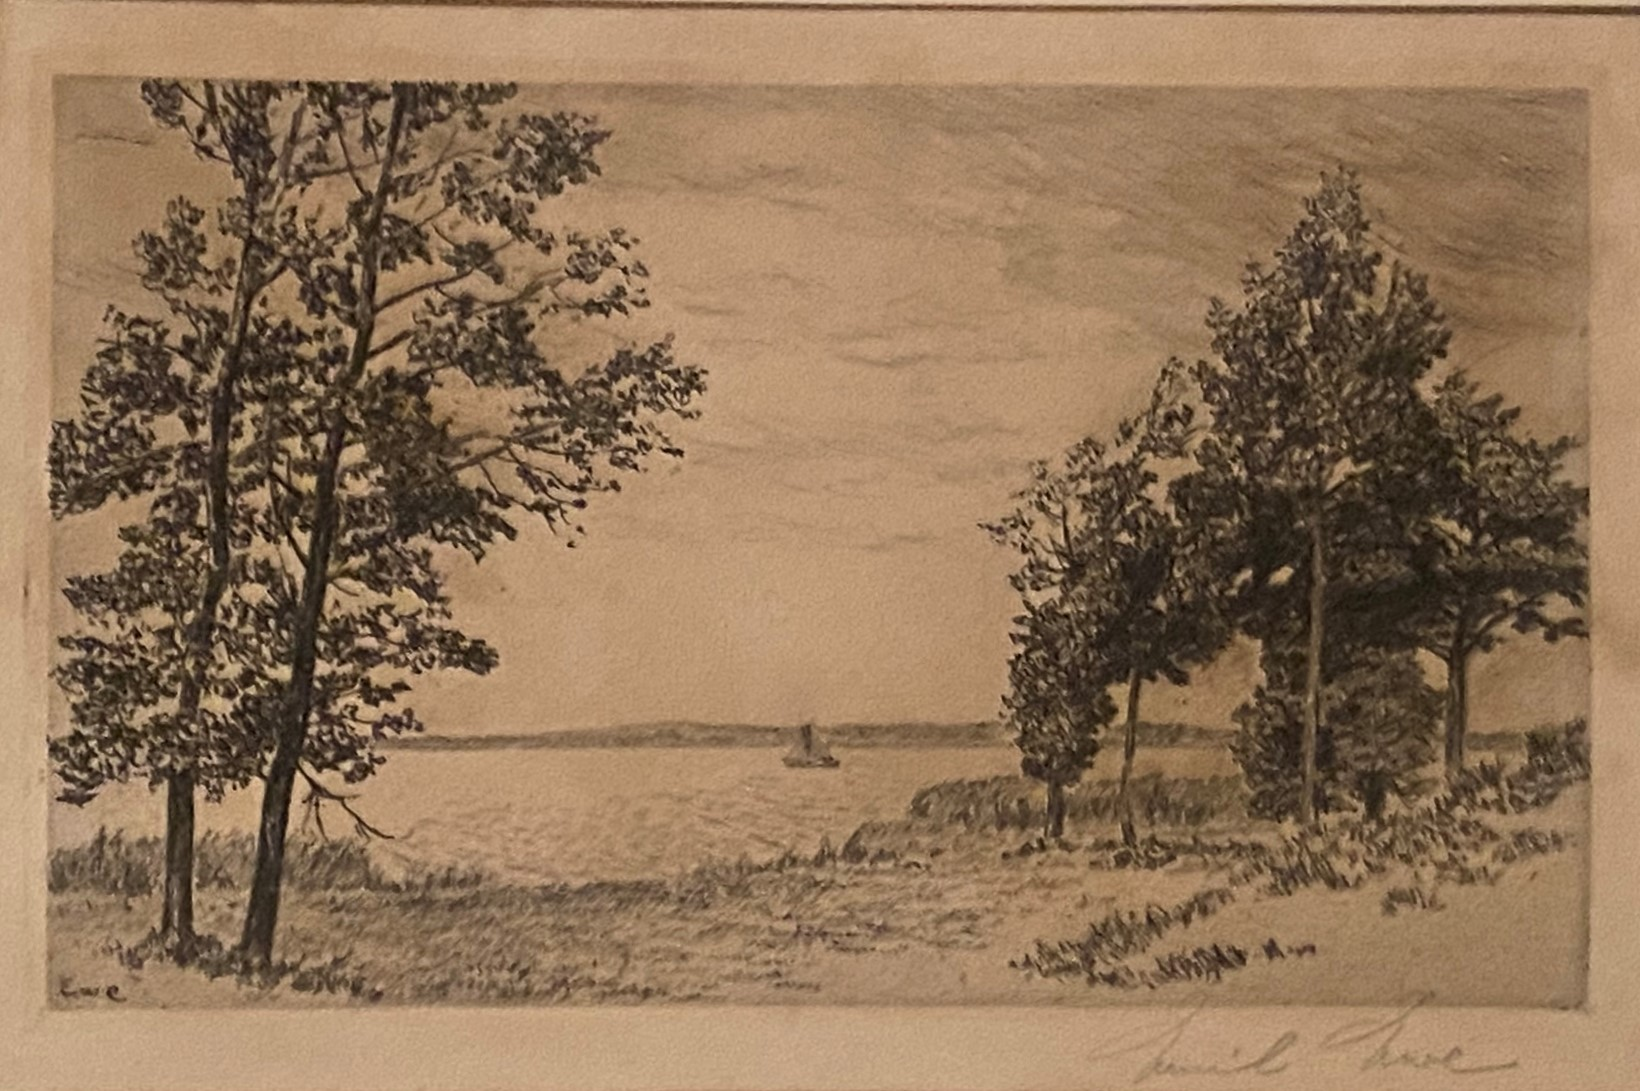 Etching Scottish Highland loch scene indistinctly signed in pencil